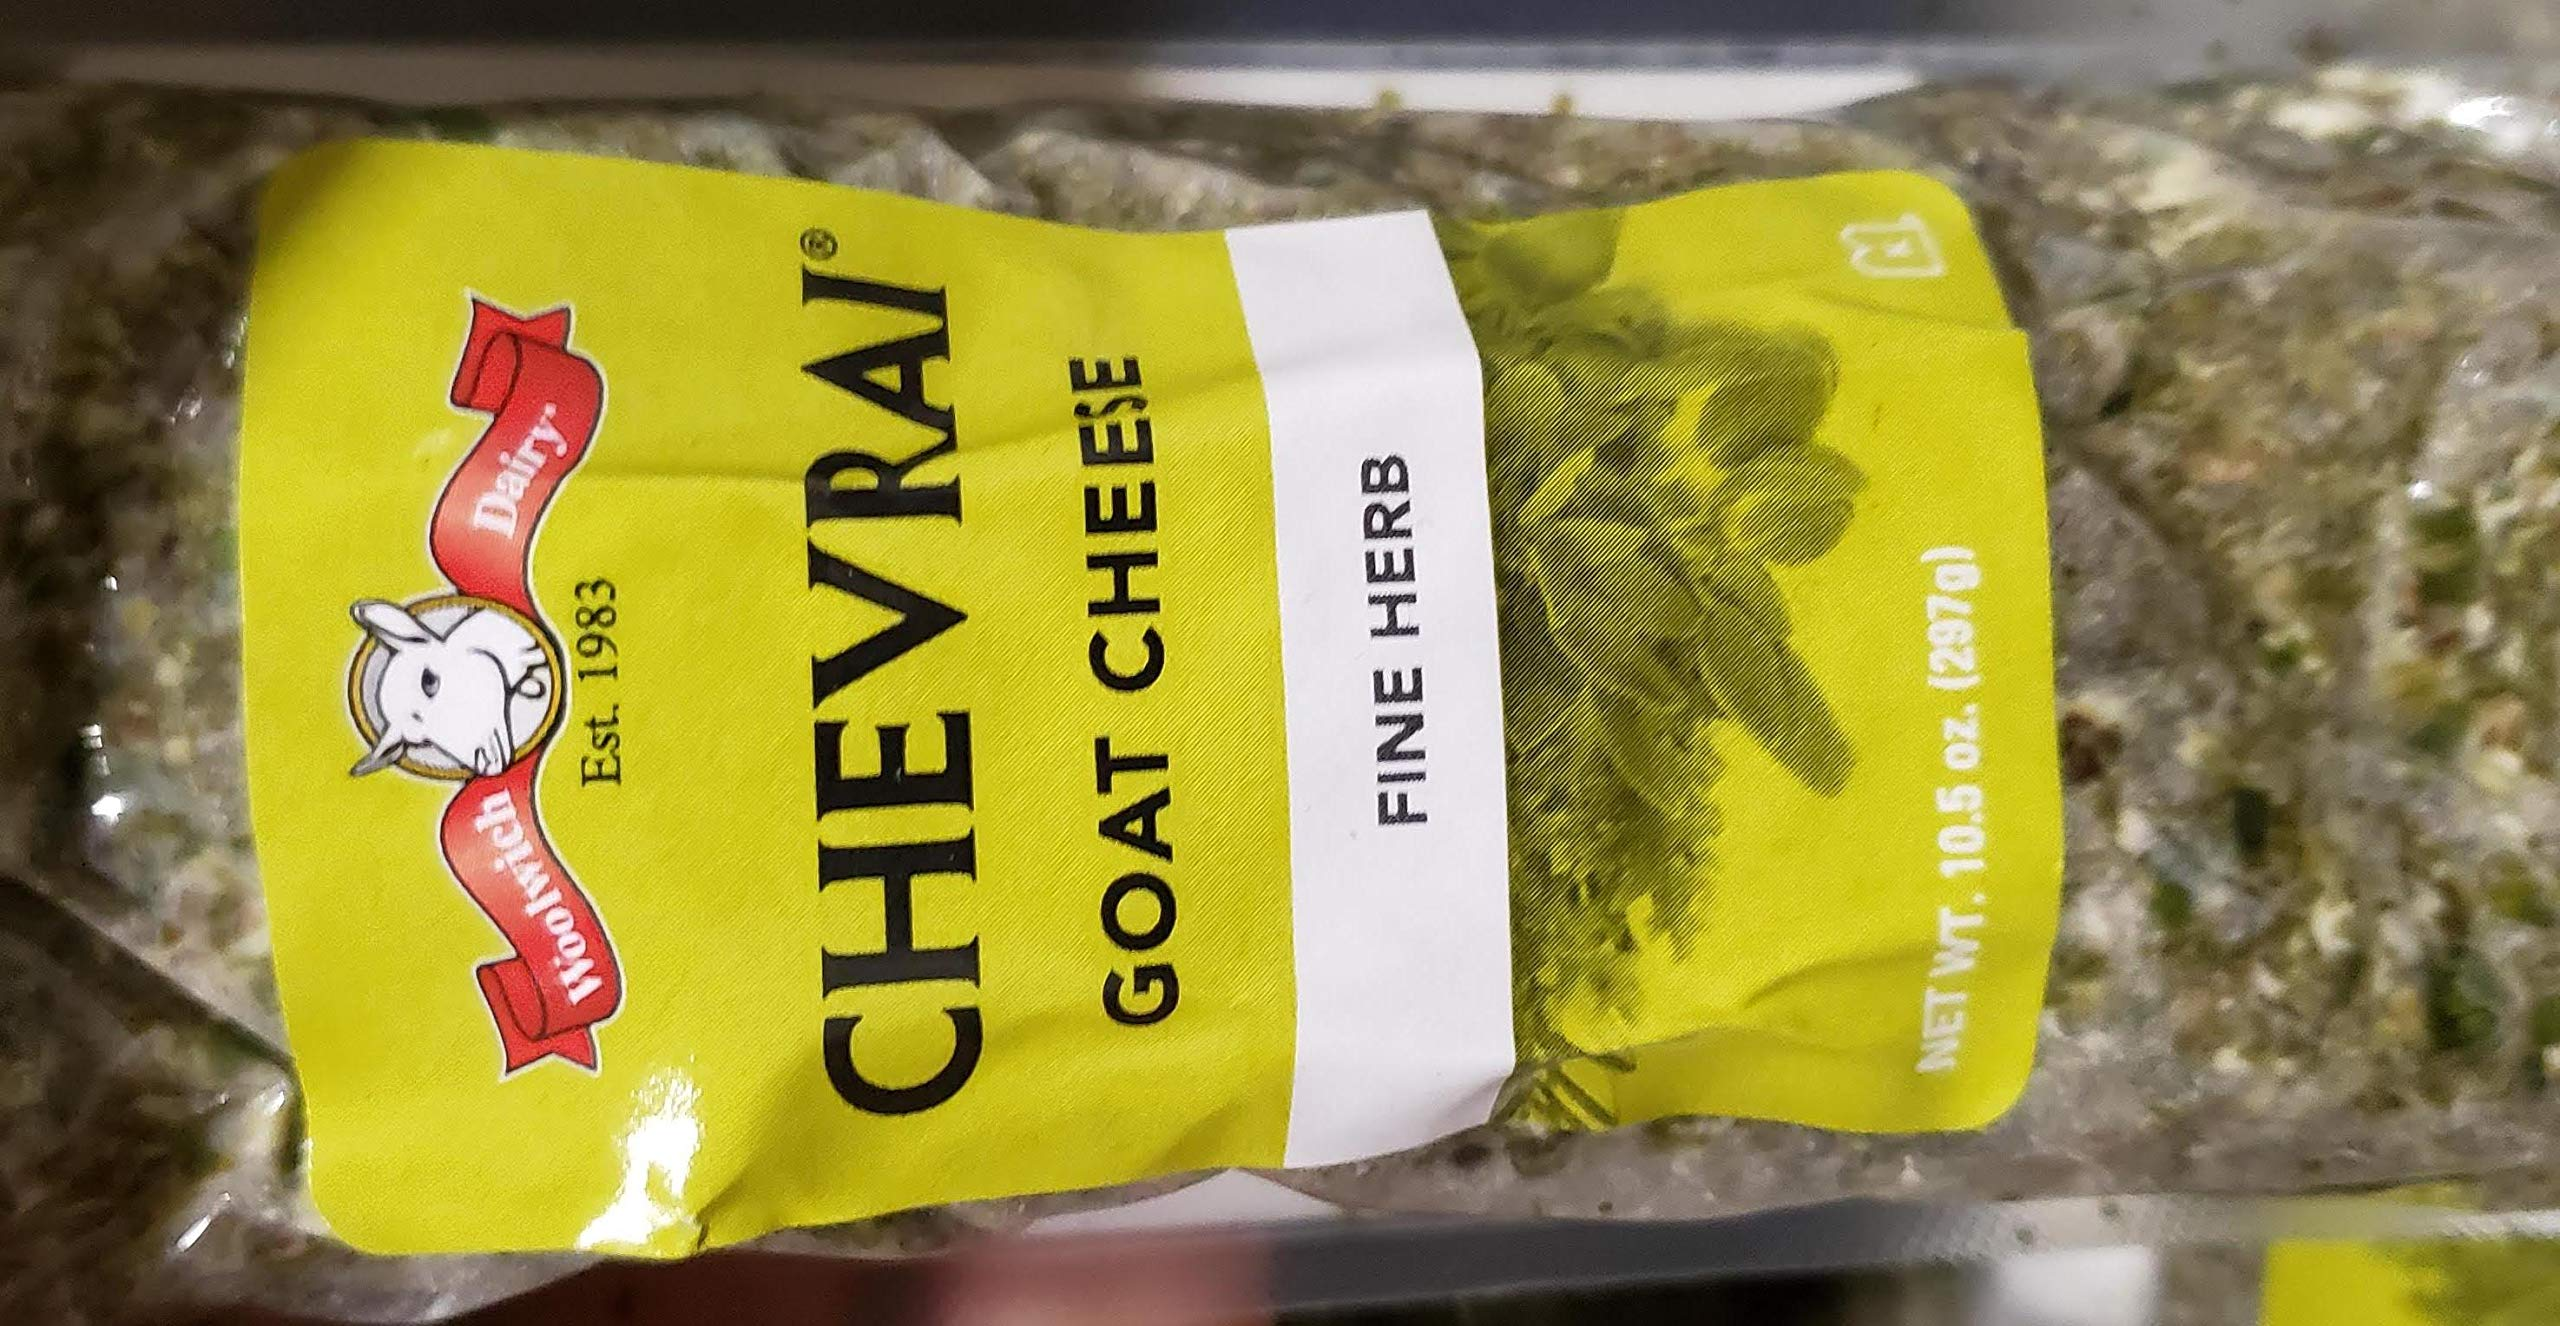 Chevrai Goat Cheese Fine Herb 10.5 oz X 2 pack Total: 21oz Kosher and Halal